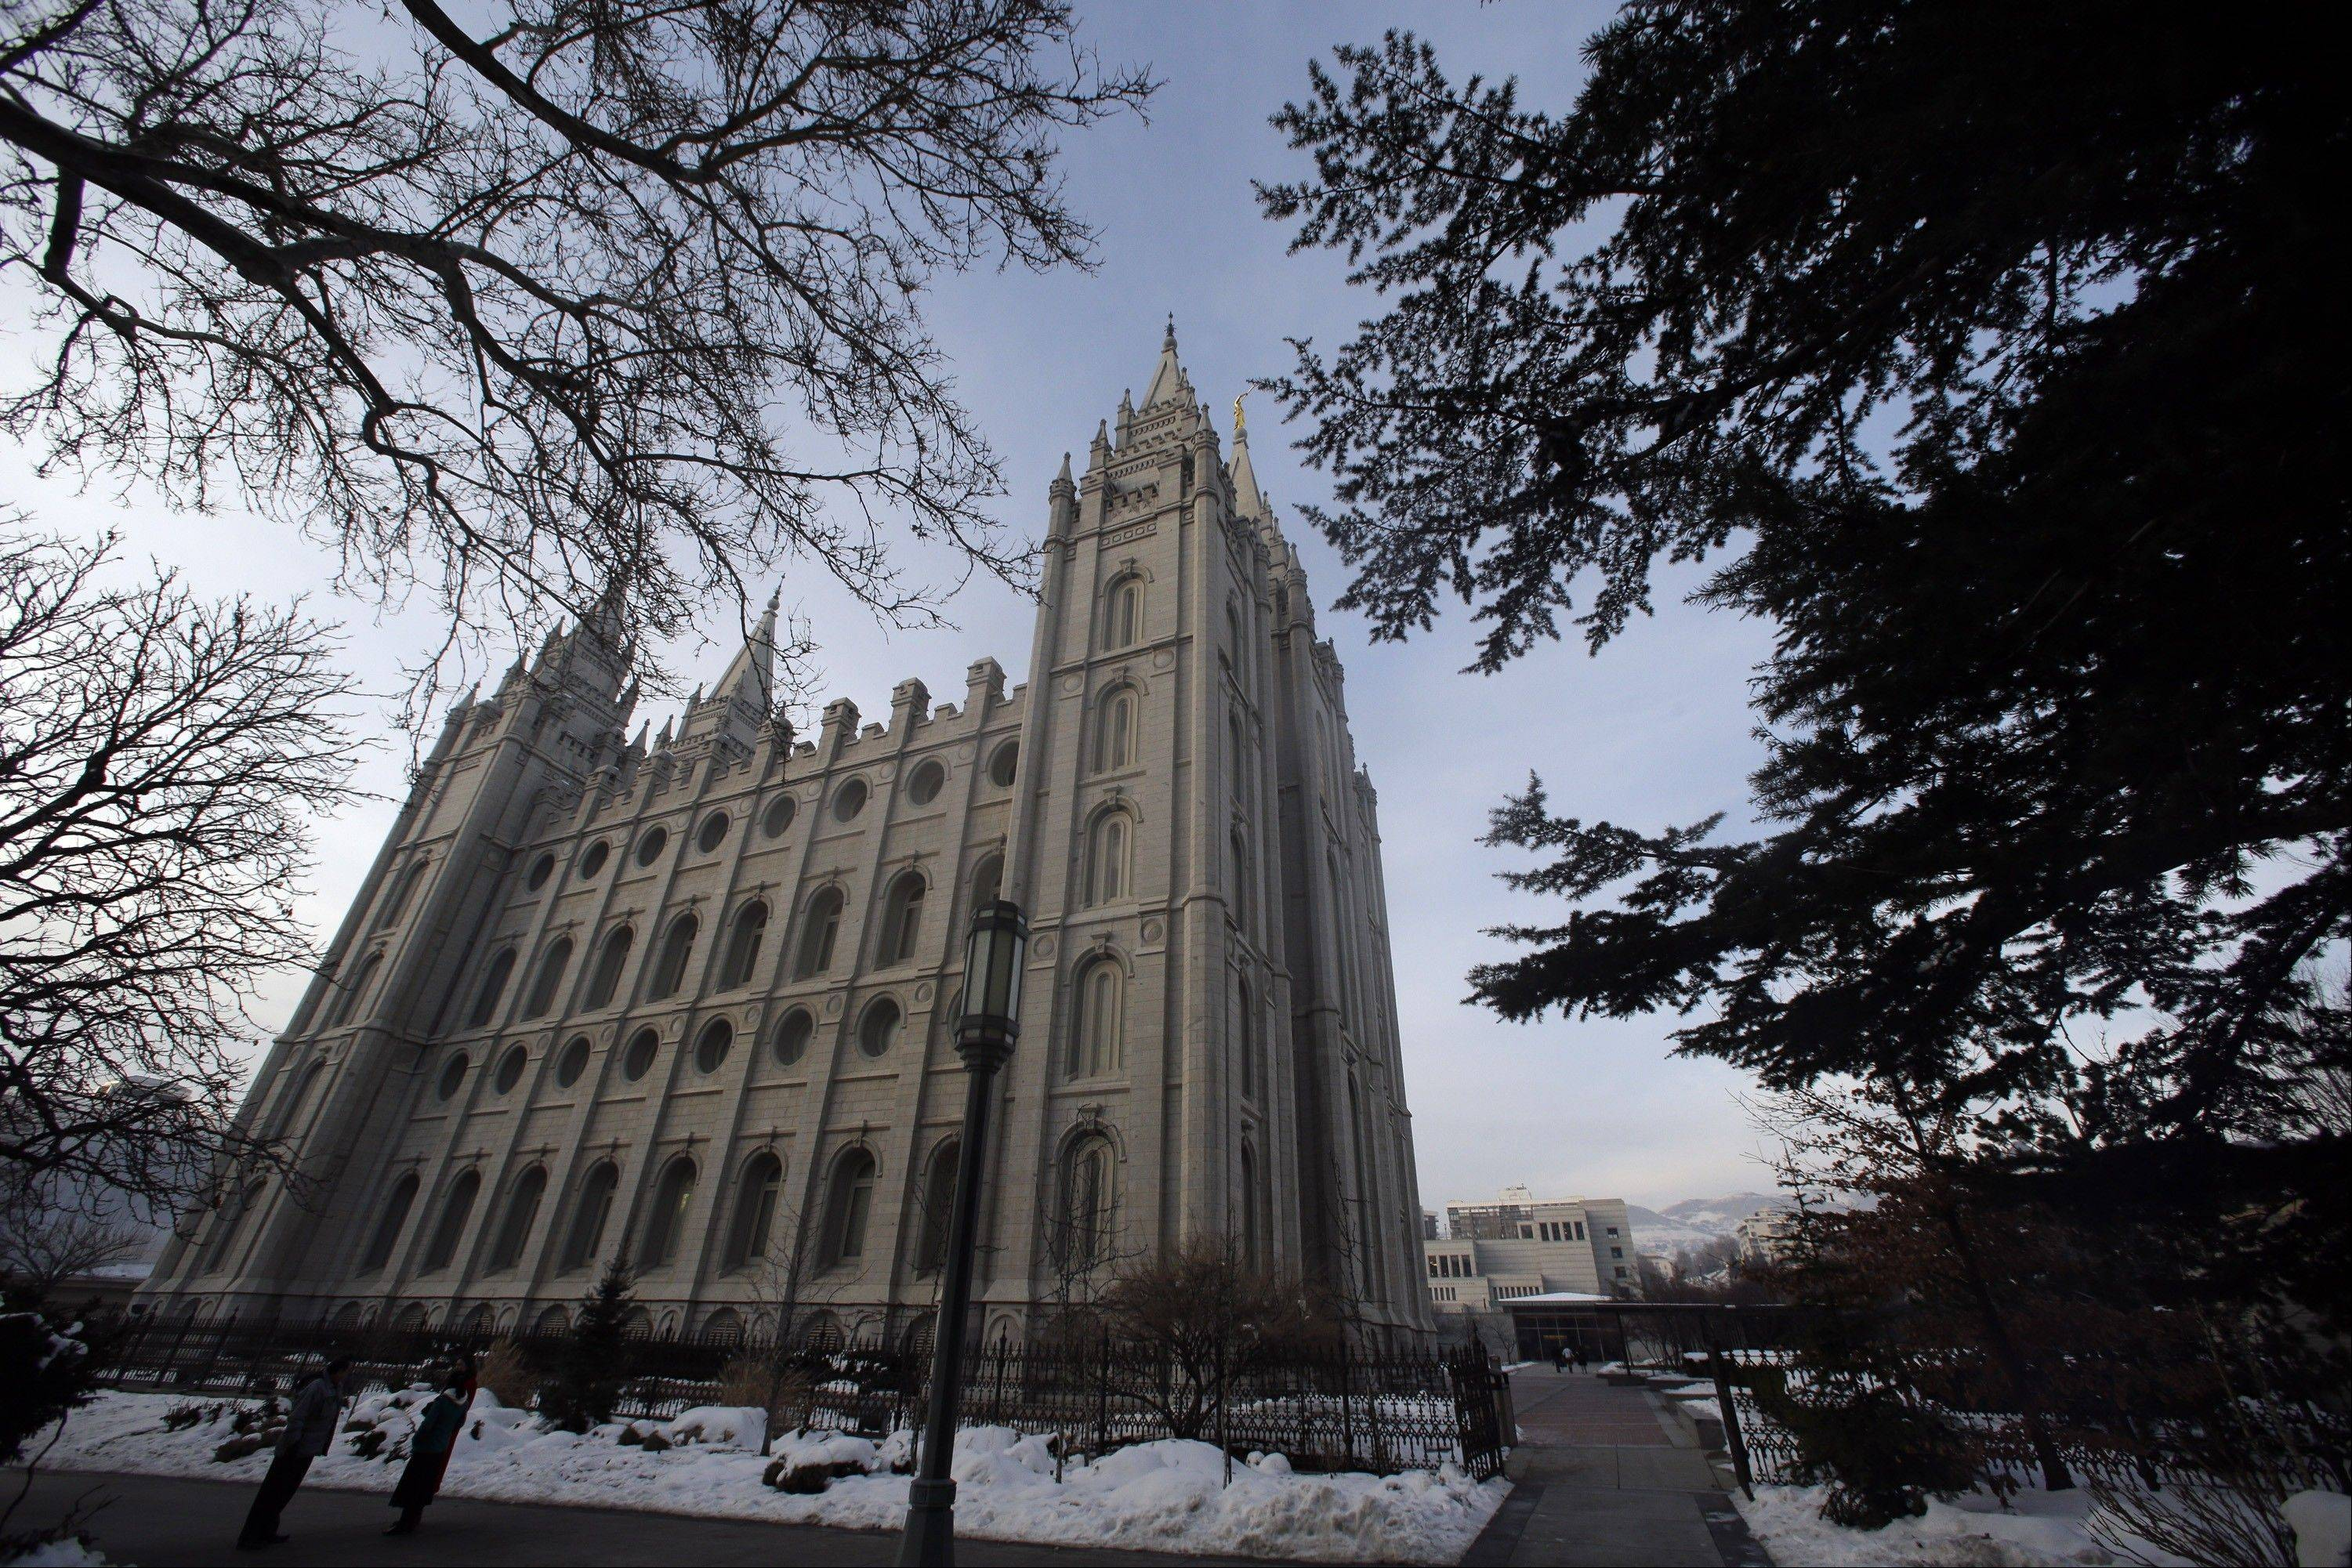 Utah's most-visited landmark, the granite-towered Temple Square in Salt Lake City features the church's sacred temple, one of the world's largest genealogy libraries and spectacular gardens.